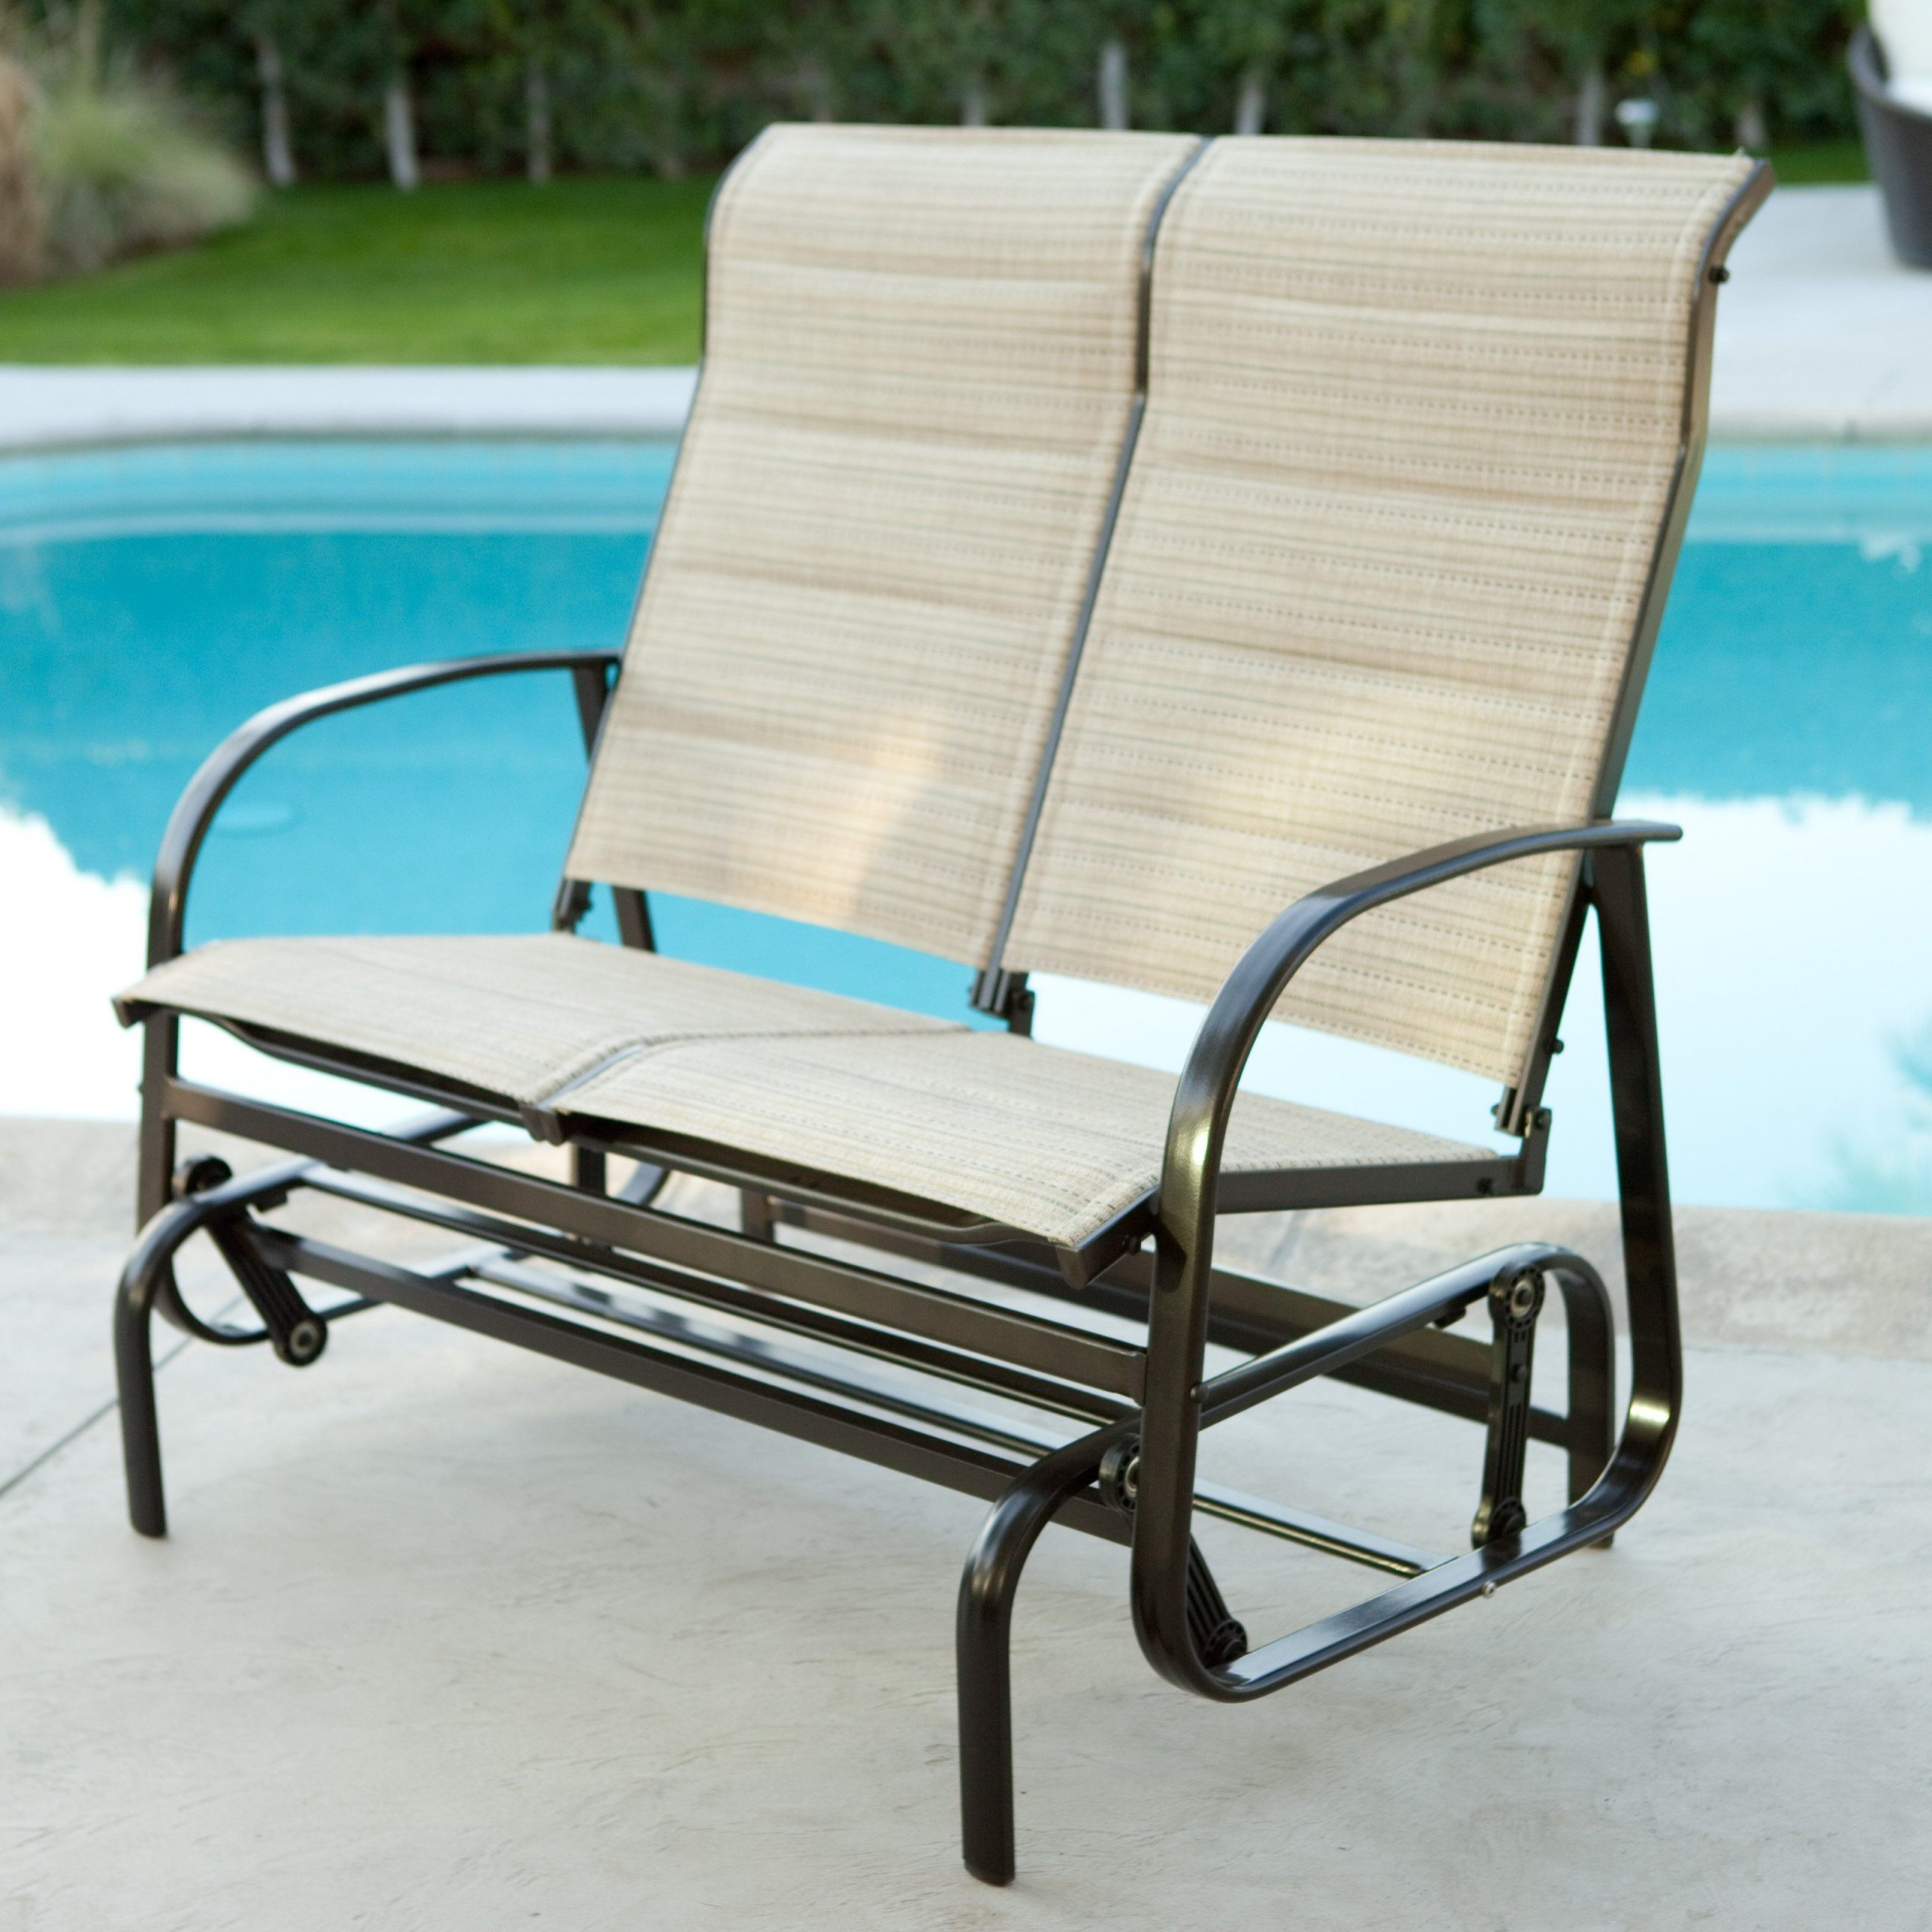 Outdoor Regarding Fashionable Padded Sling Double Glider Benches (View 13 of 30)